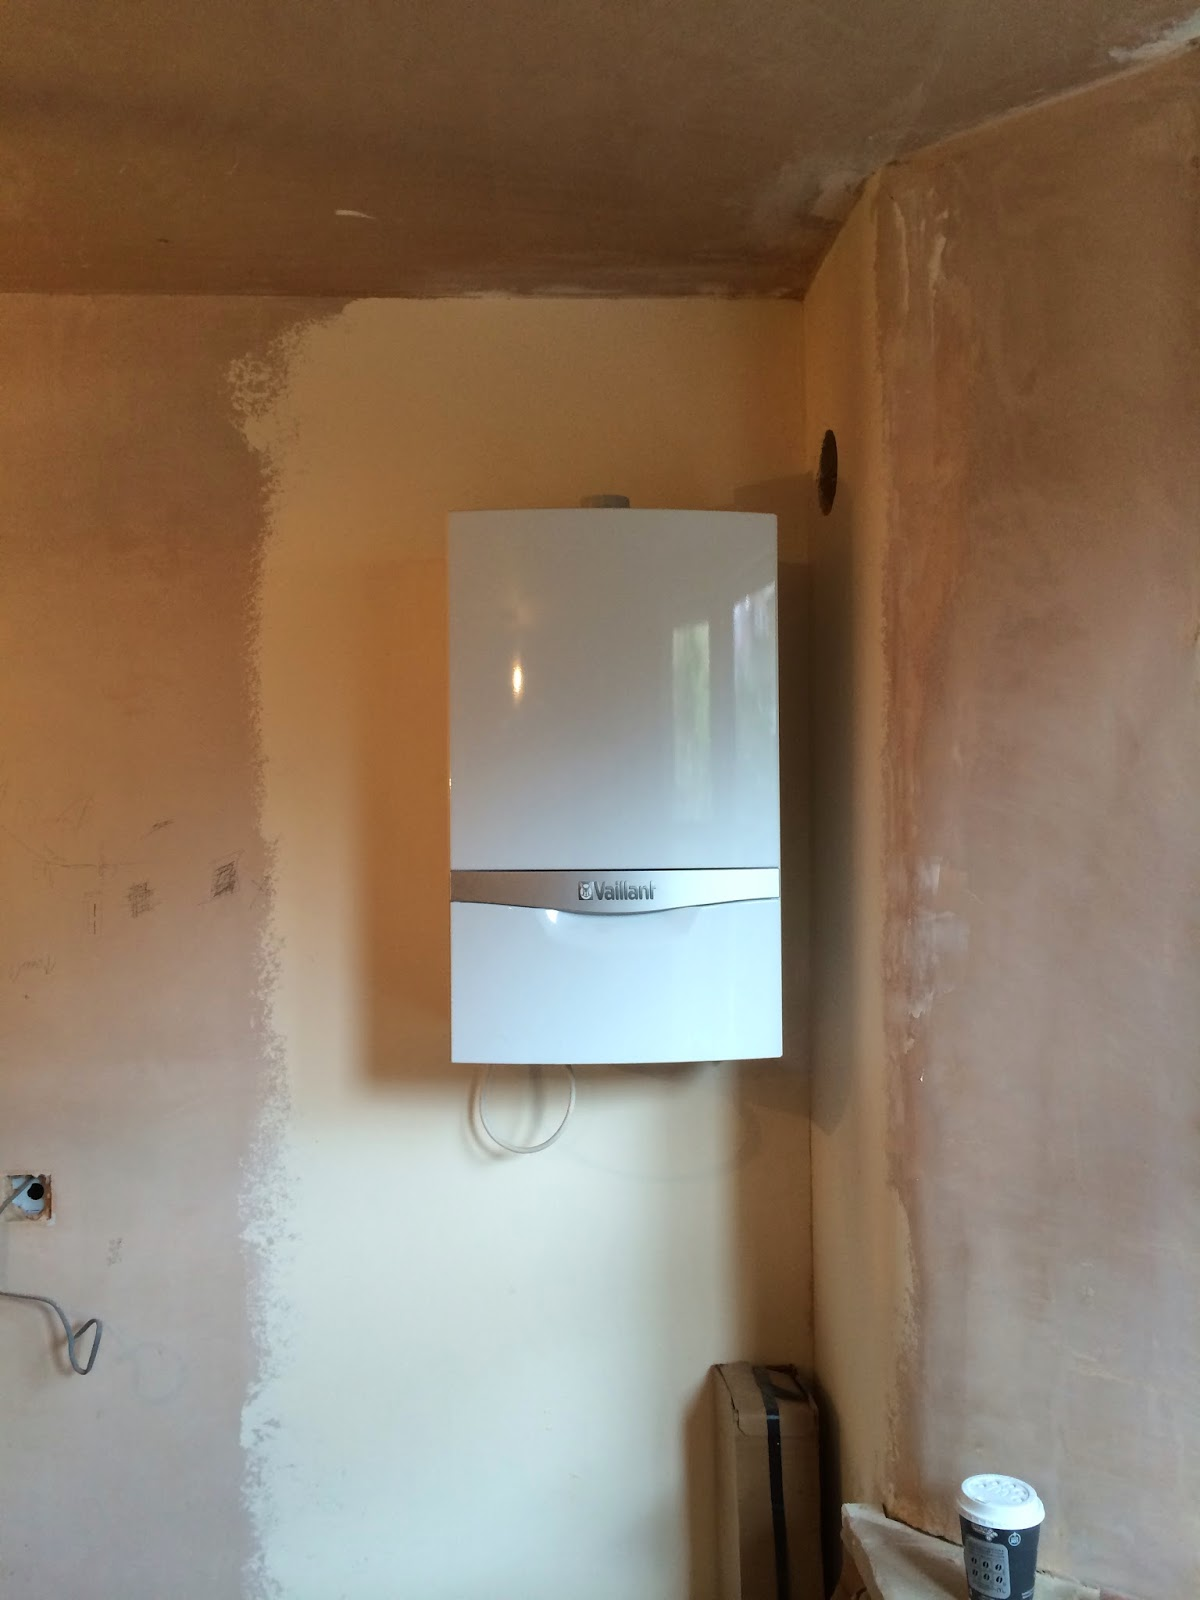 S Plan Plus Underfloor Heating Wiring Diagram A Light Switch From An Outlet Diagrams To Add Receptacle Do It Hsc Engineering System Boiler And Unvented Cylinder